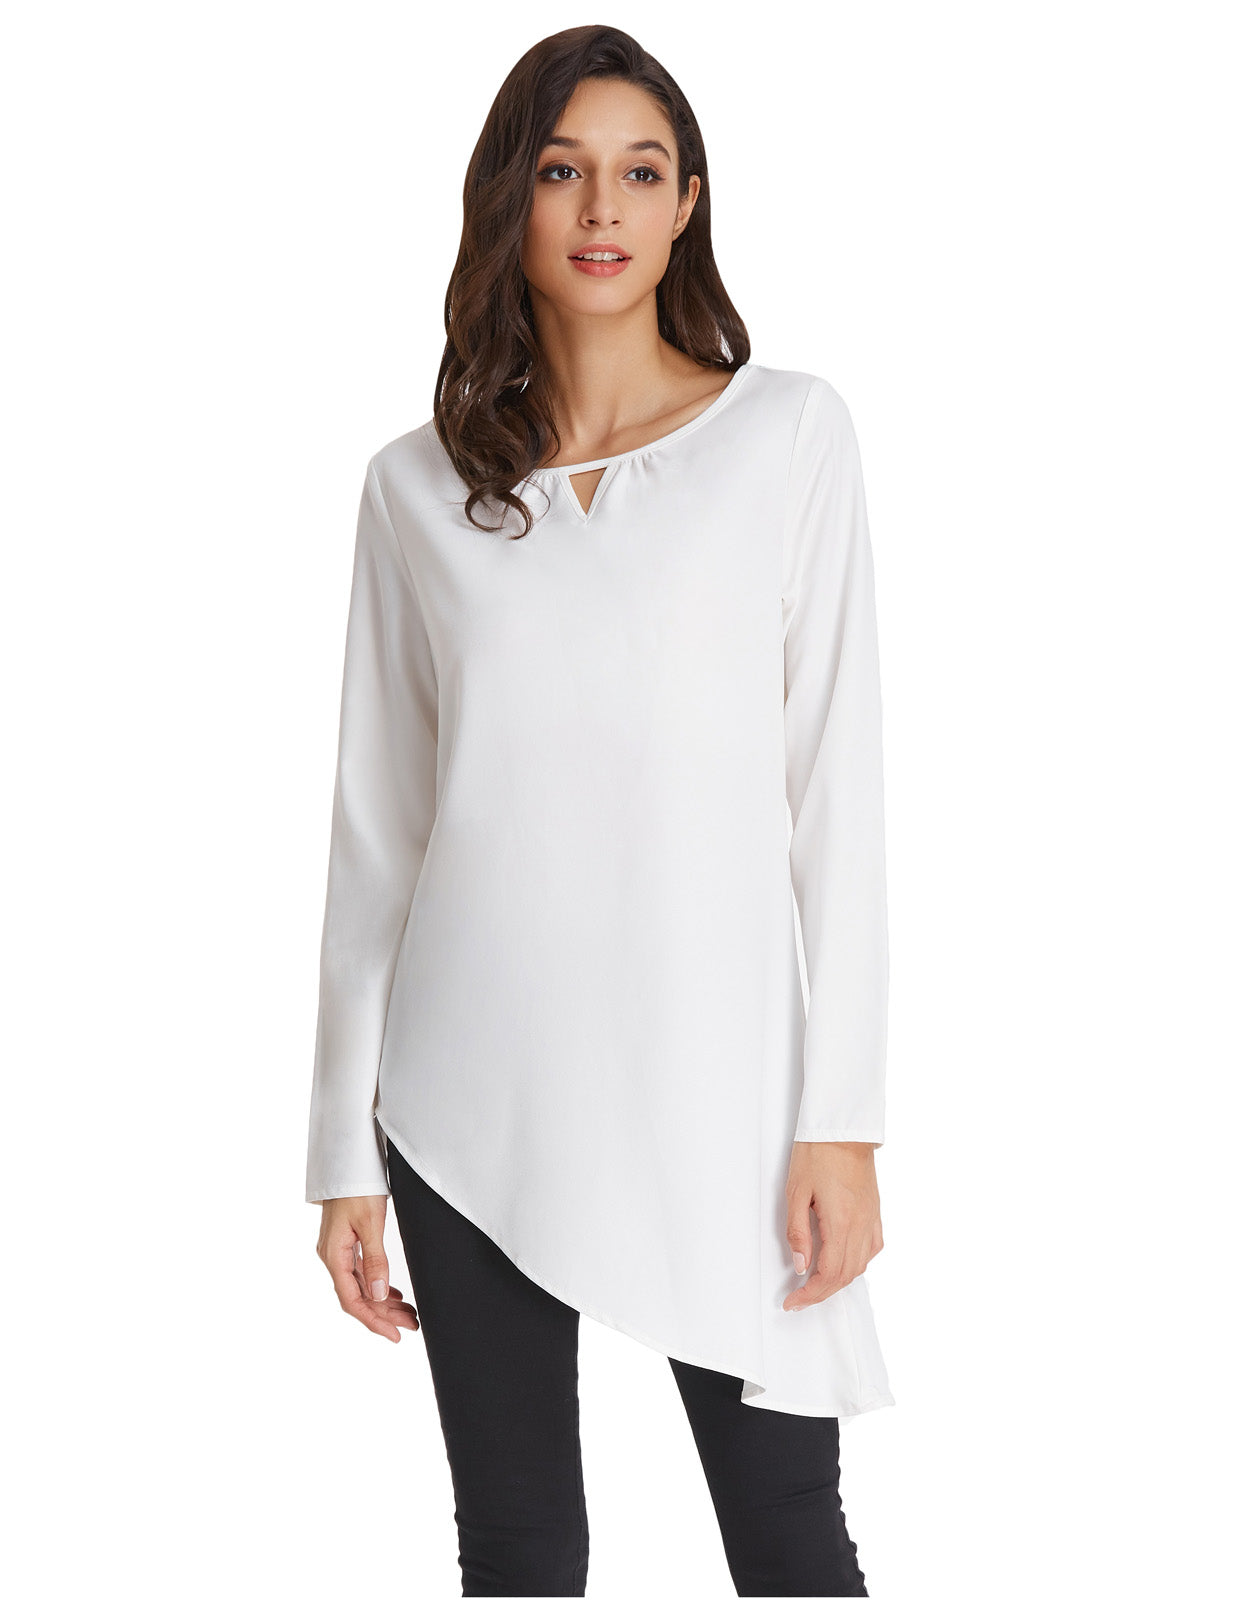 510c13ec96a Grace Karin Women s Simple Sexy Solid Color Thin Summer Long Sleeve Crew  Neck Asymmetrical Tops White